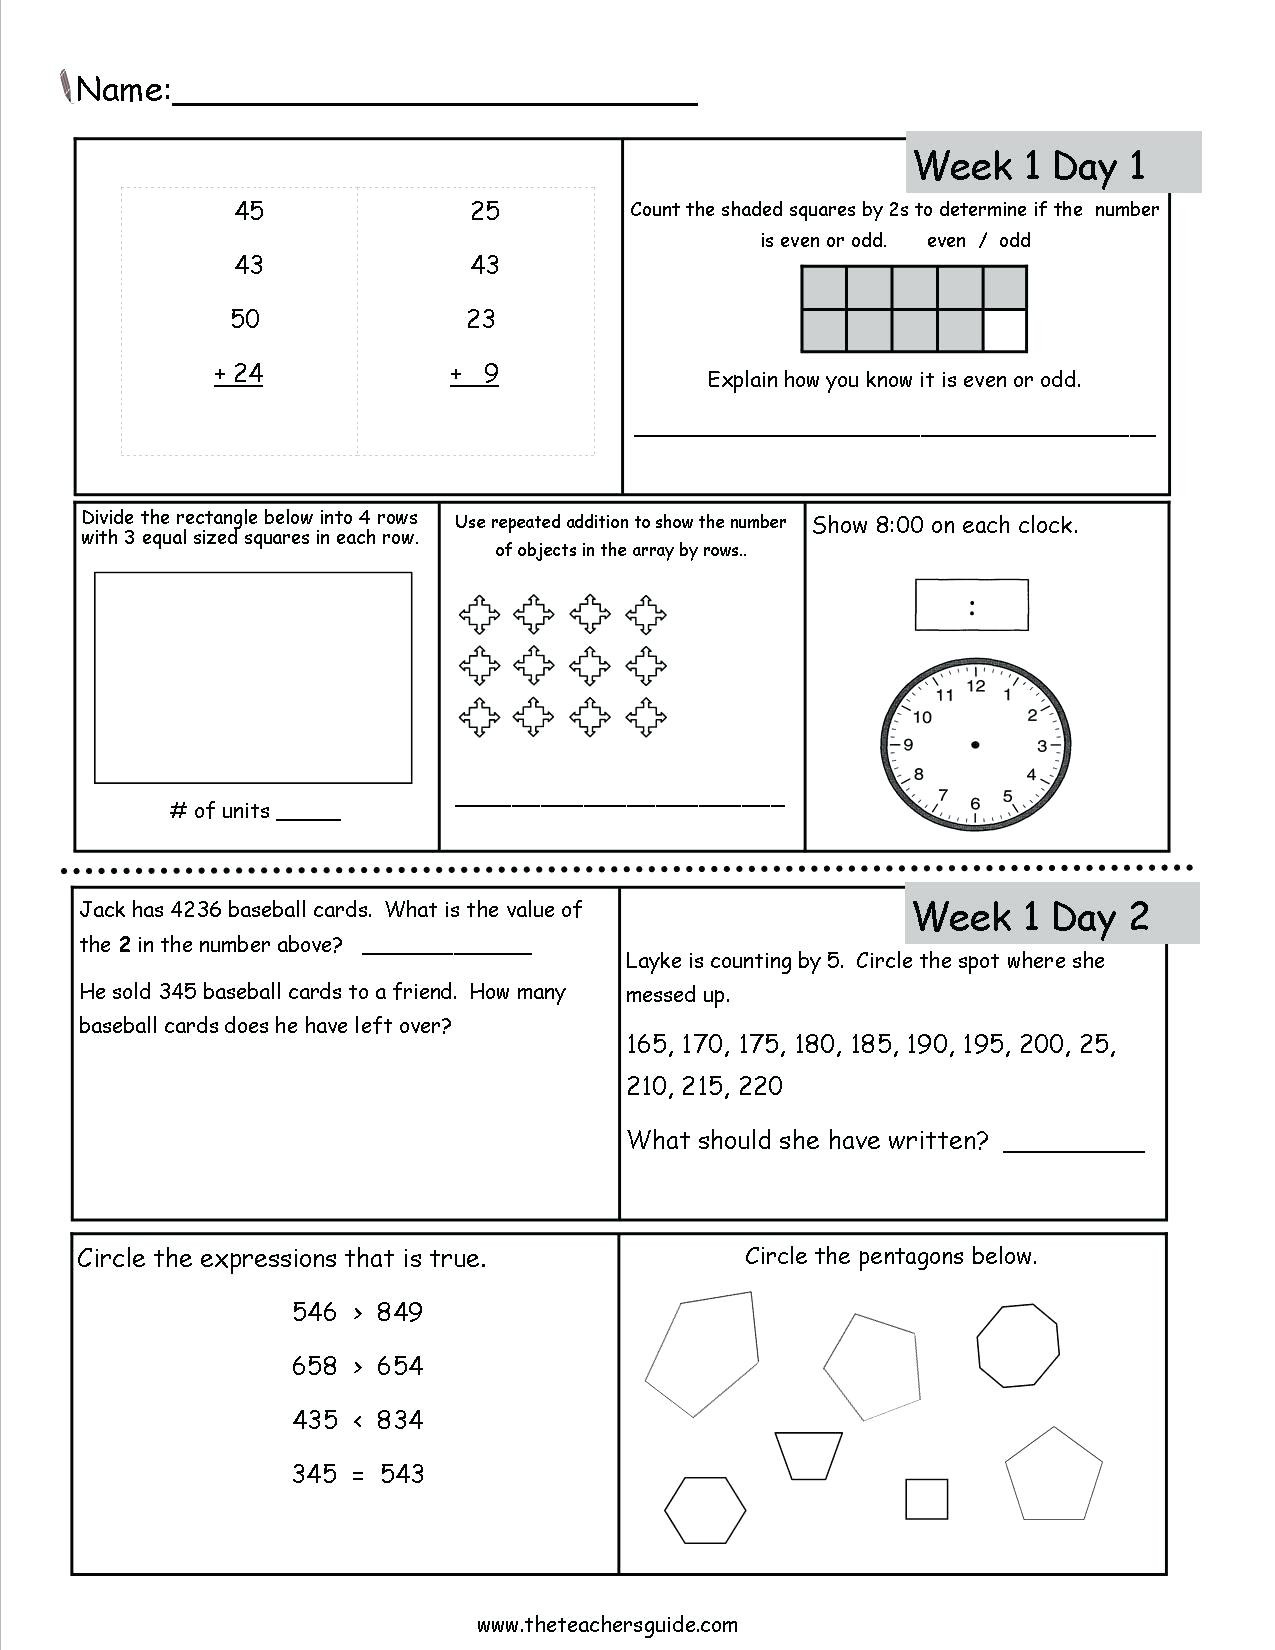 hight resolution of 3 Free Math Worksheets First Grade 1 Addition Add 3 Single Digit Number -  apocalomegaproductions.com